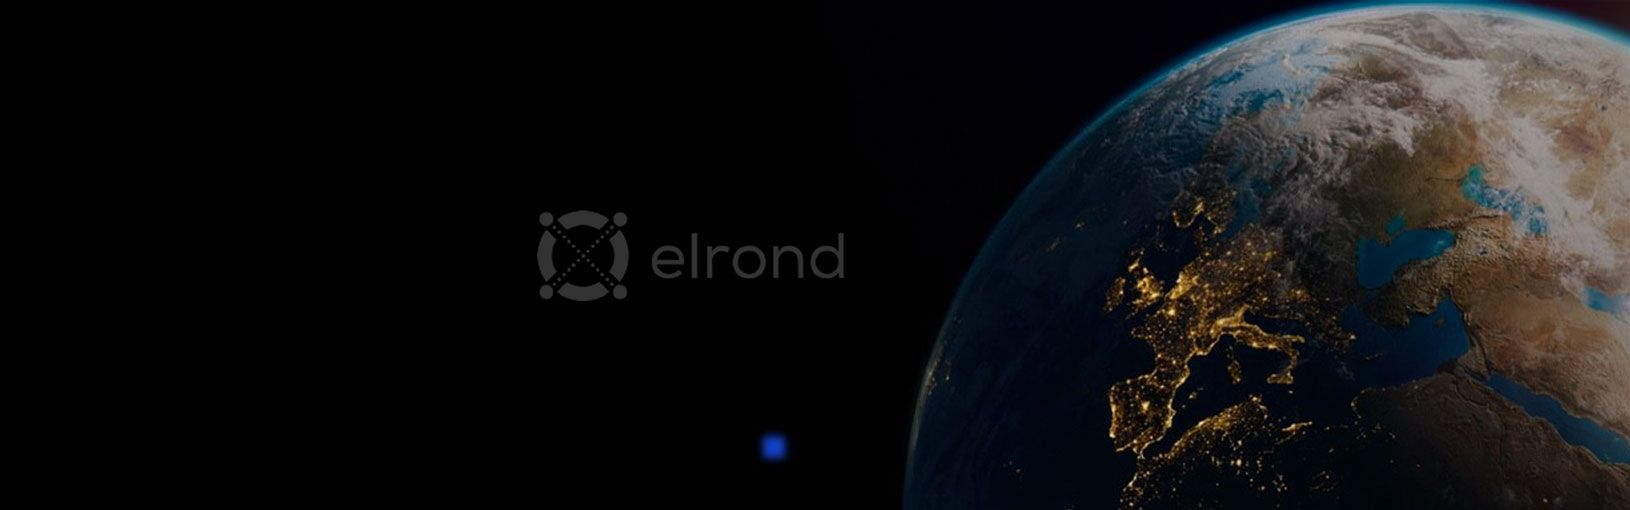 elrond network coin